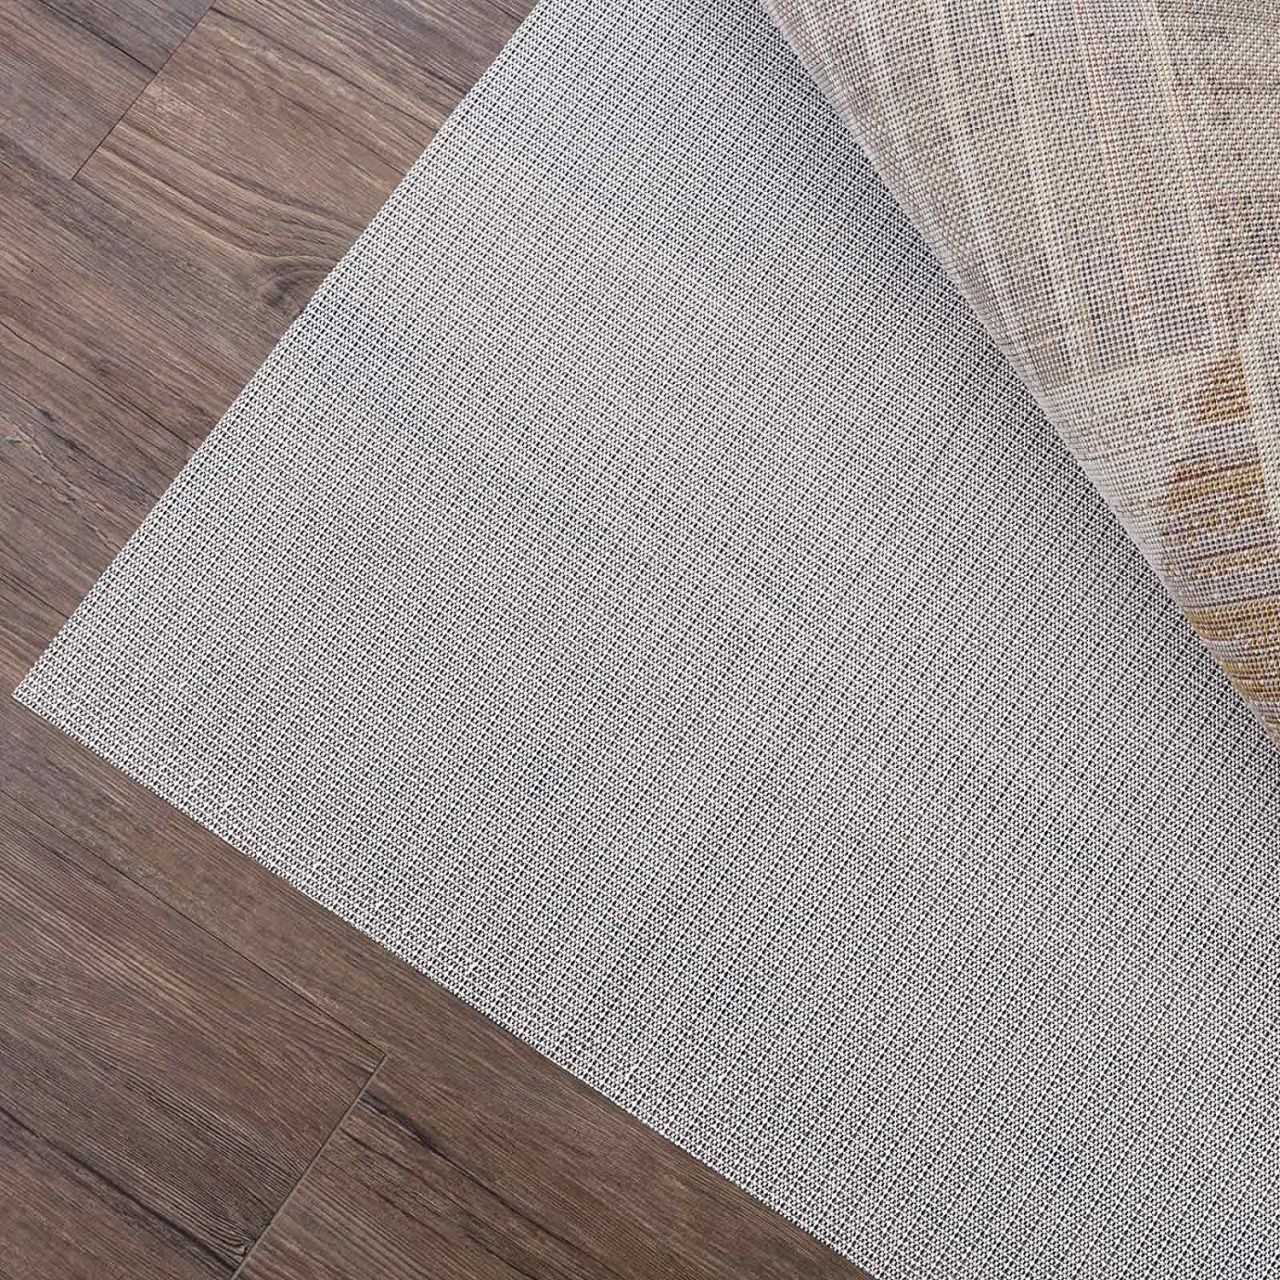 5ea3b39af95bb16b24a2a8815a0e8dc4 - How To Get The Folds Out Of A New Rug